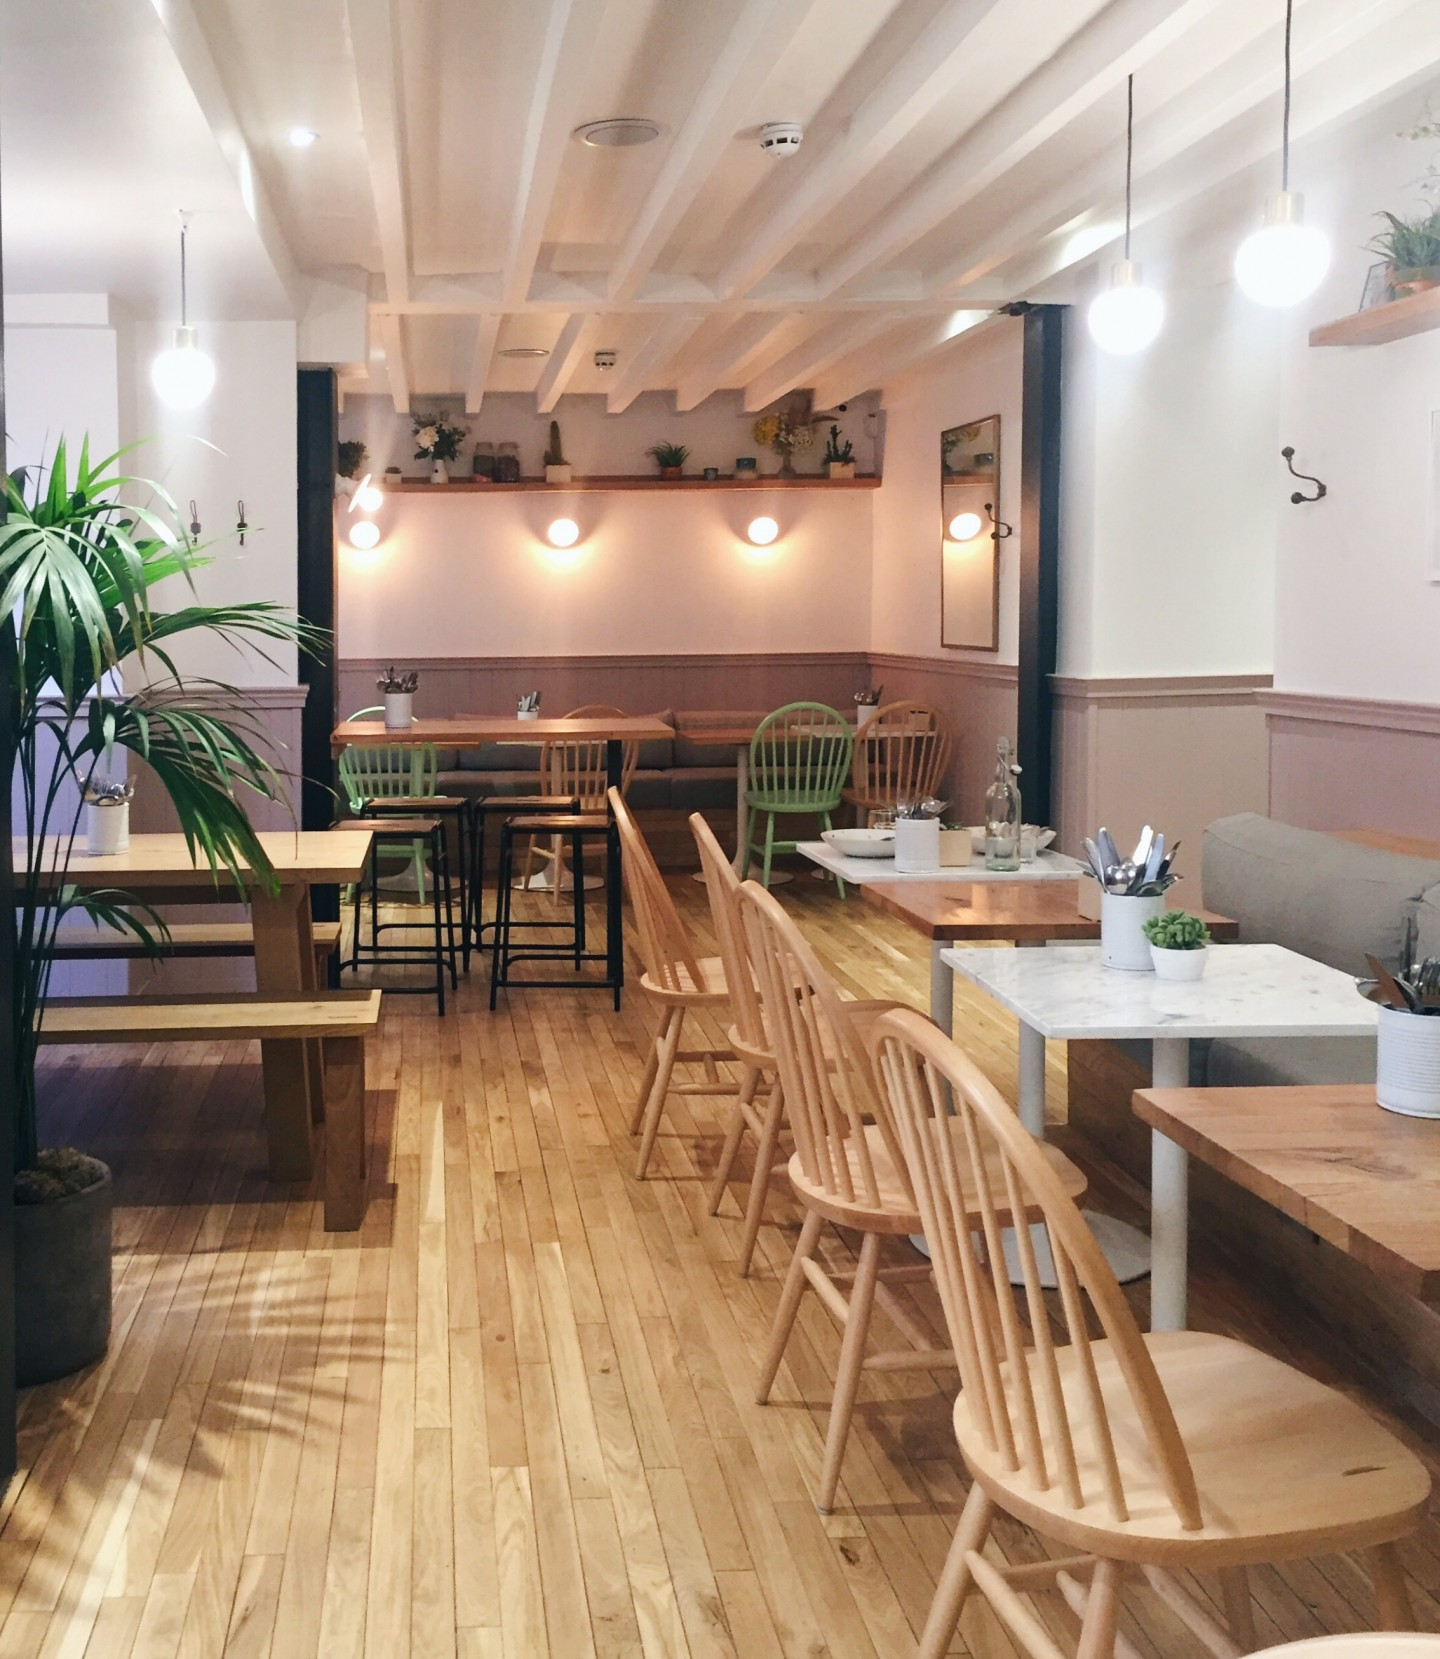 The interiors at The Mae Deli in make me want to move in!